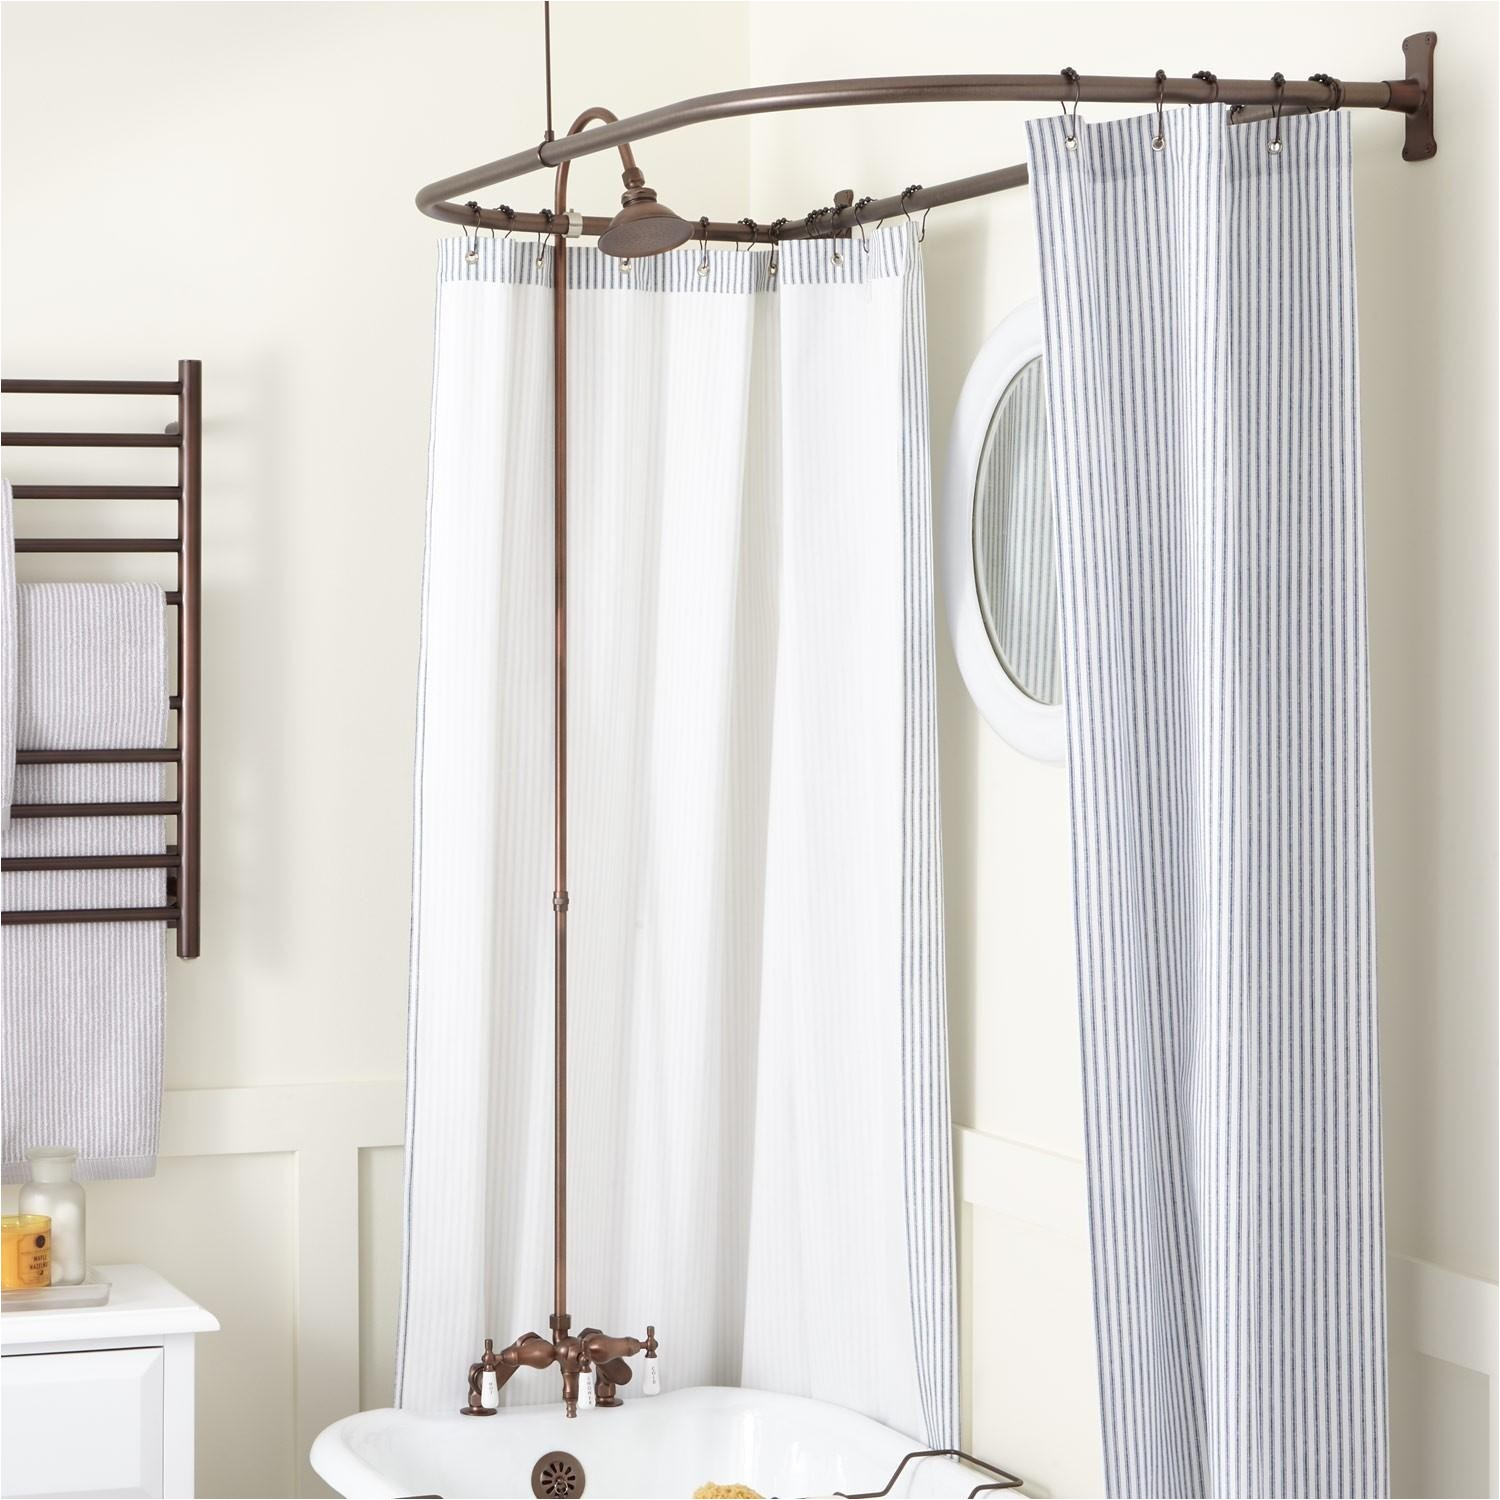 30 beautiful kohls shower curtains inspiration of texas shower curtain